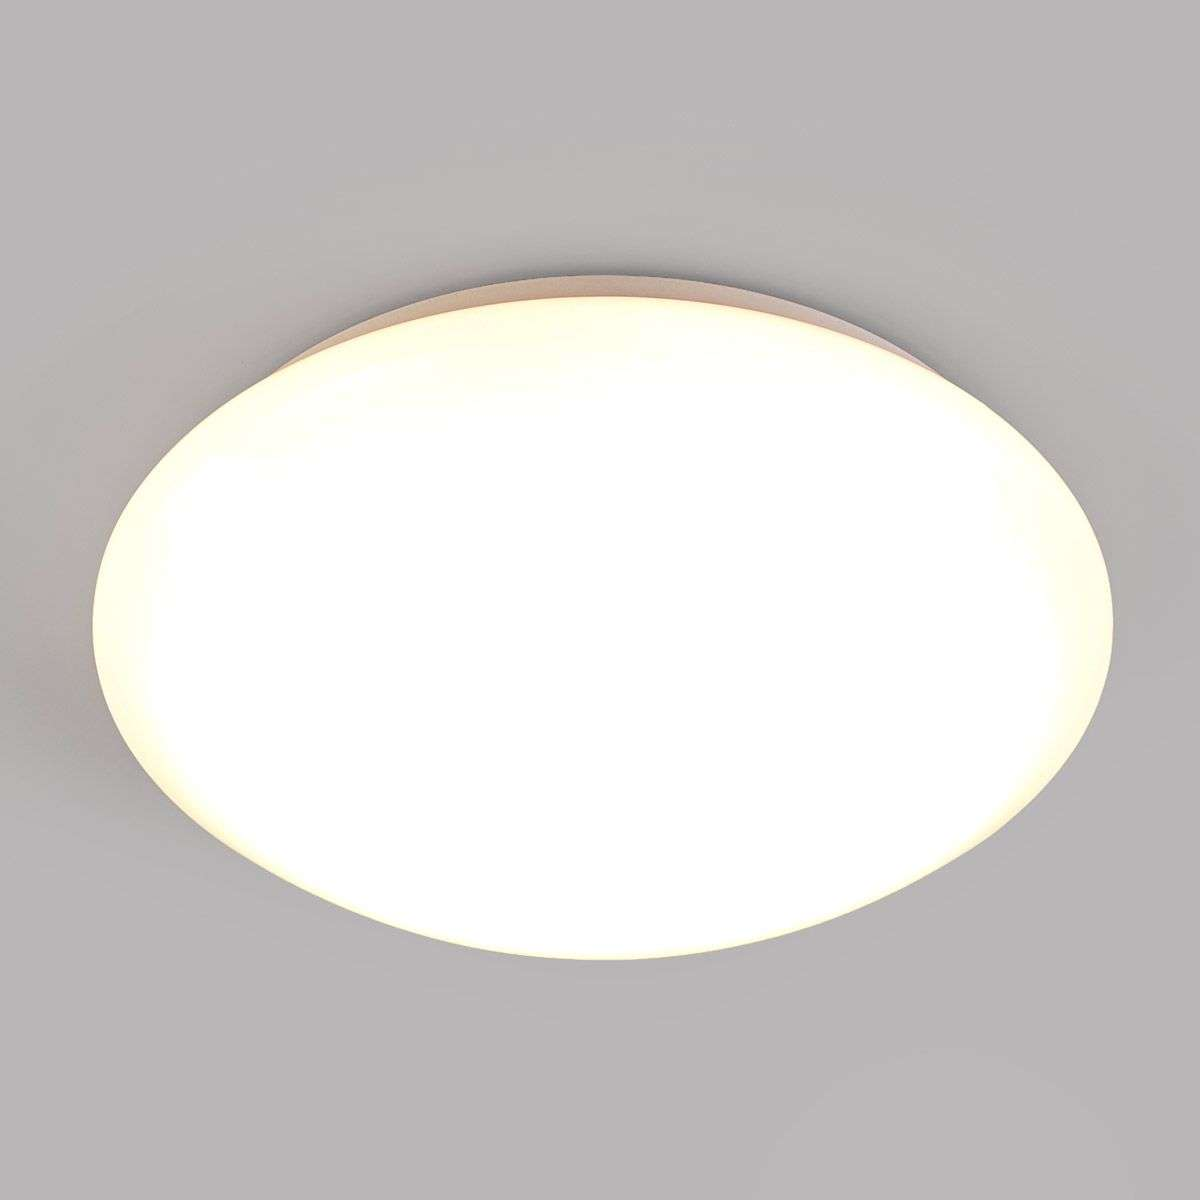 led bathroom ceiling lights. Simple LED Bathroom Ceiling Lamp Selveta, 30 Cm Led Lights W